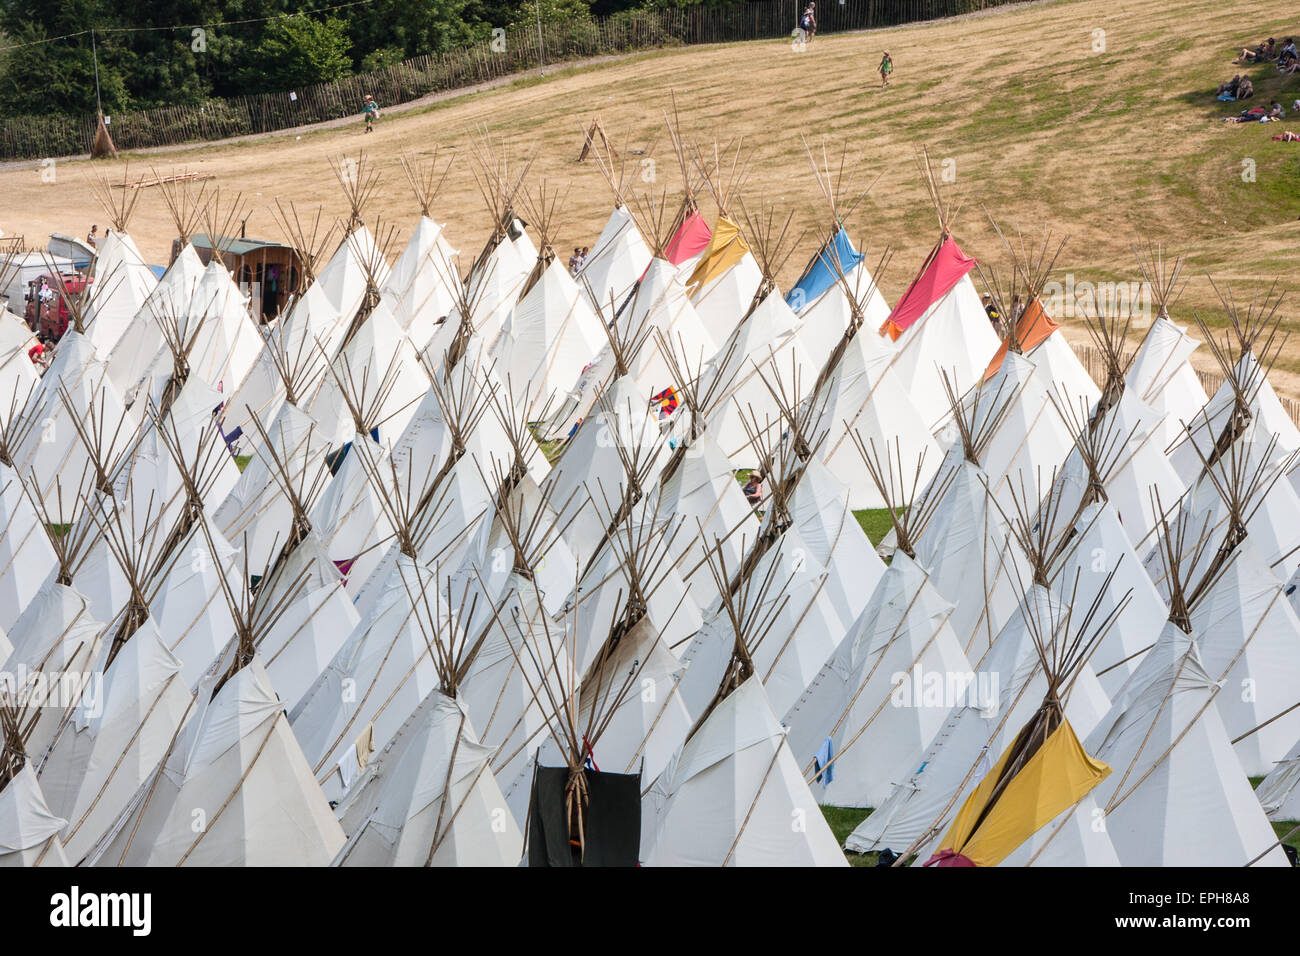 Tepee/ tipiwigwam tents available to hire at luxury tent teepee village/Tipi Field an exclusive area at Glastonbury Festival/  Glasto & Glamping.Tepee/ tipiwigwam tents available to hire at luxury ...